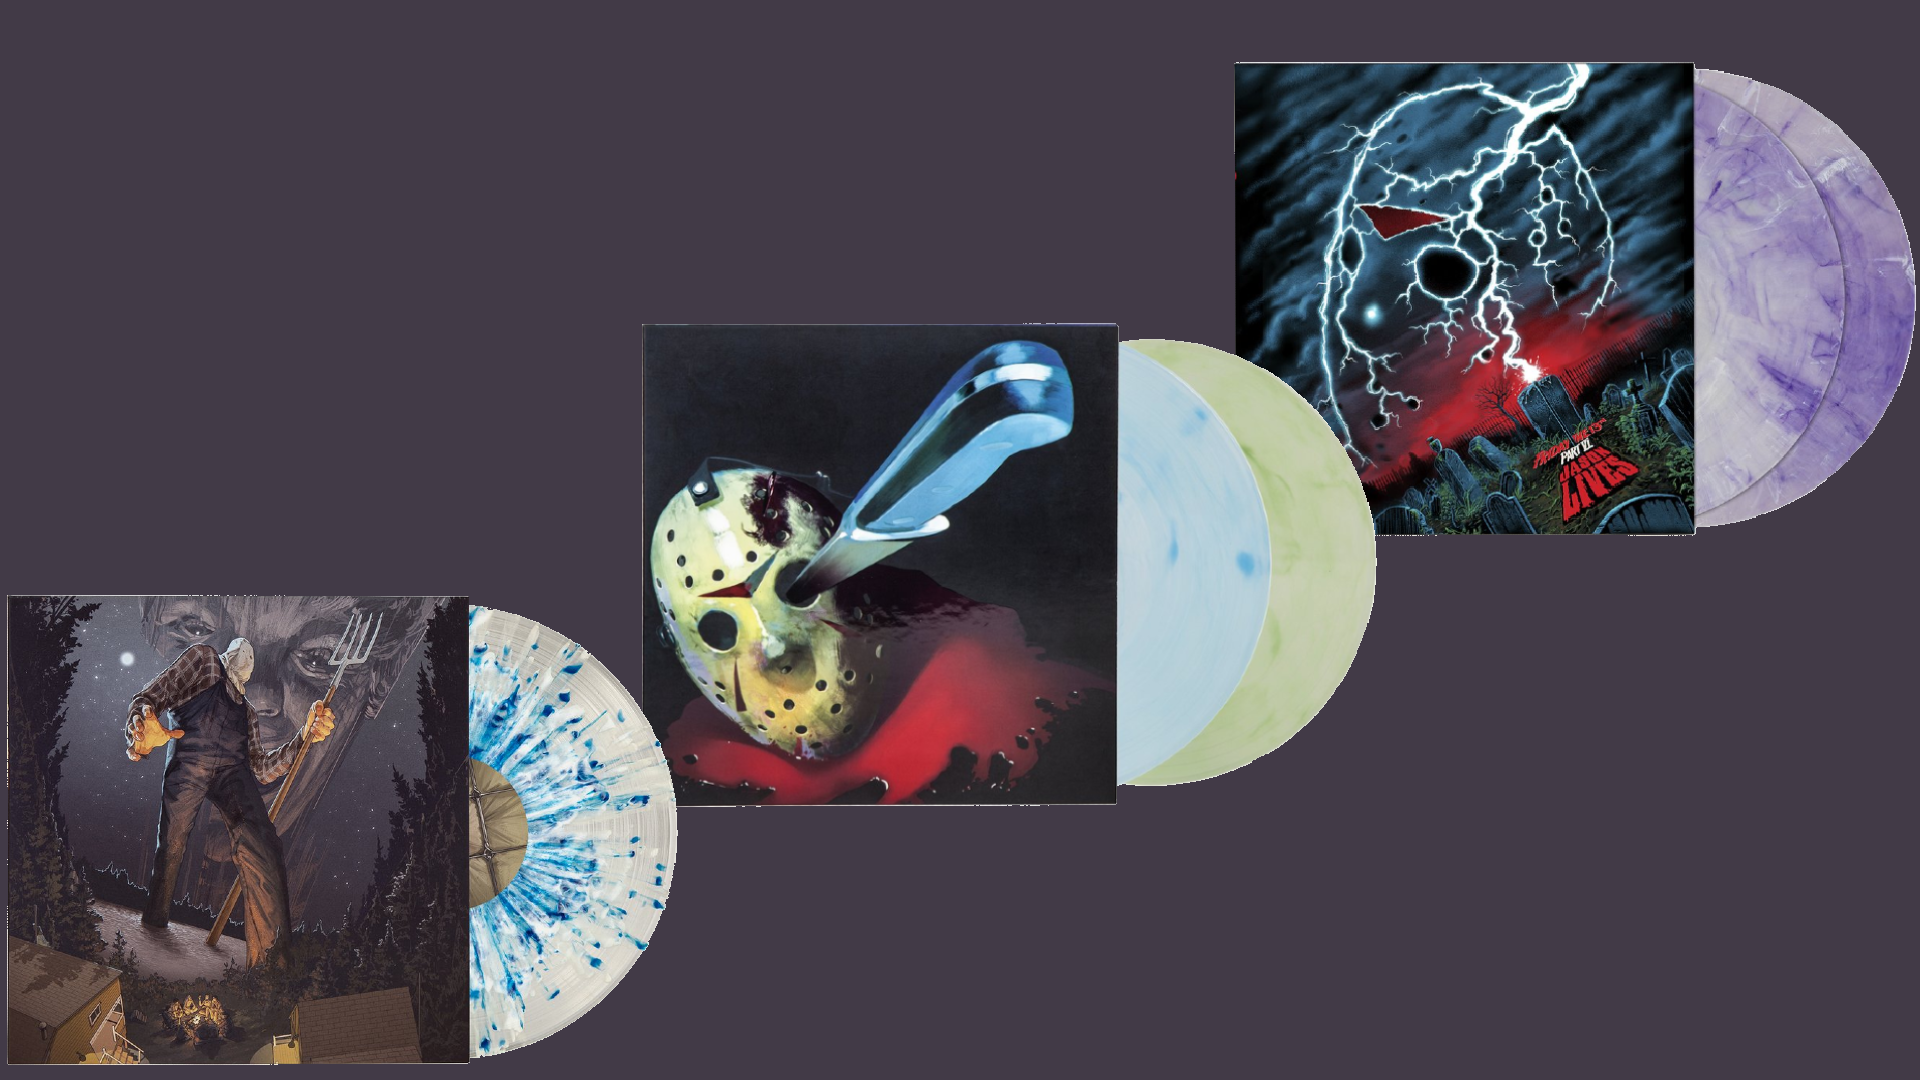 Waxwork Friday the 13th Vinyl Bundle ~ Enter to win vinyl copies of Friday the 13th, Friday the 13th Part 2, Friday the 13th: The Final Chapter, and Friday the 13th Part VI: Jason Lives. Giveaway Image